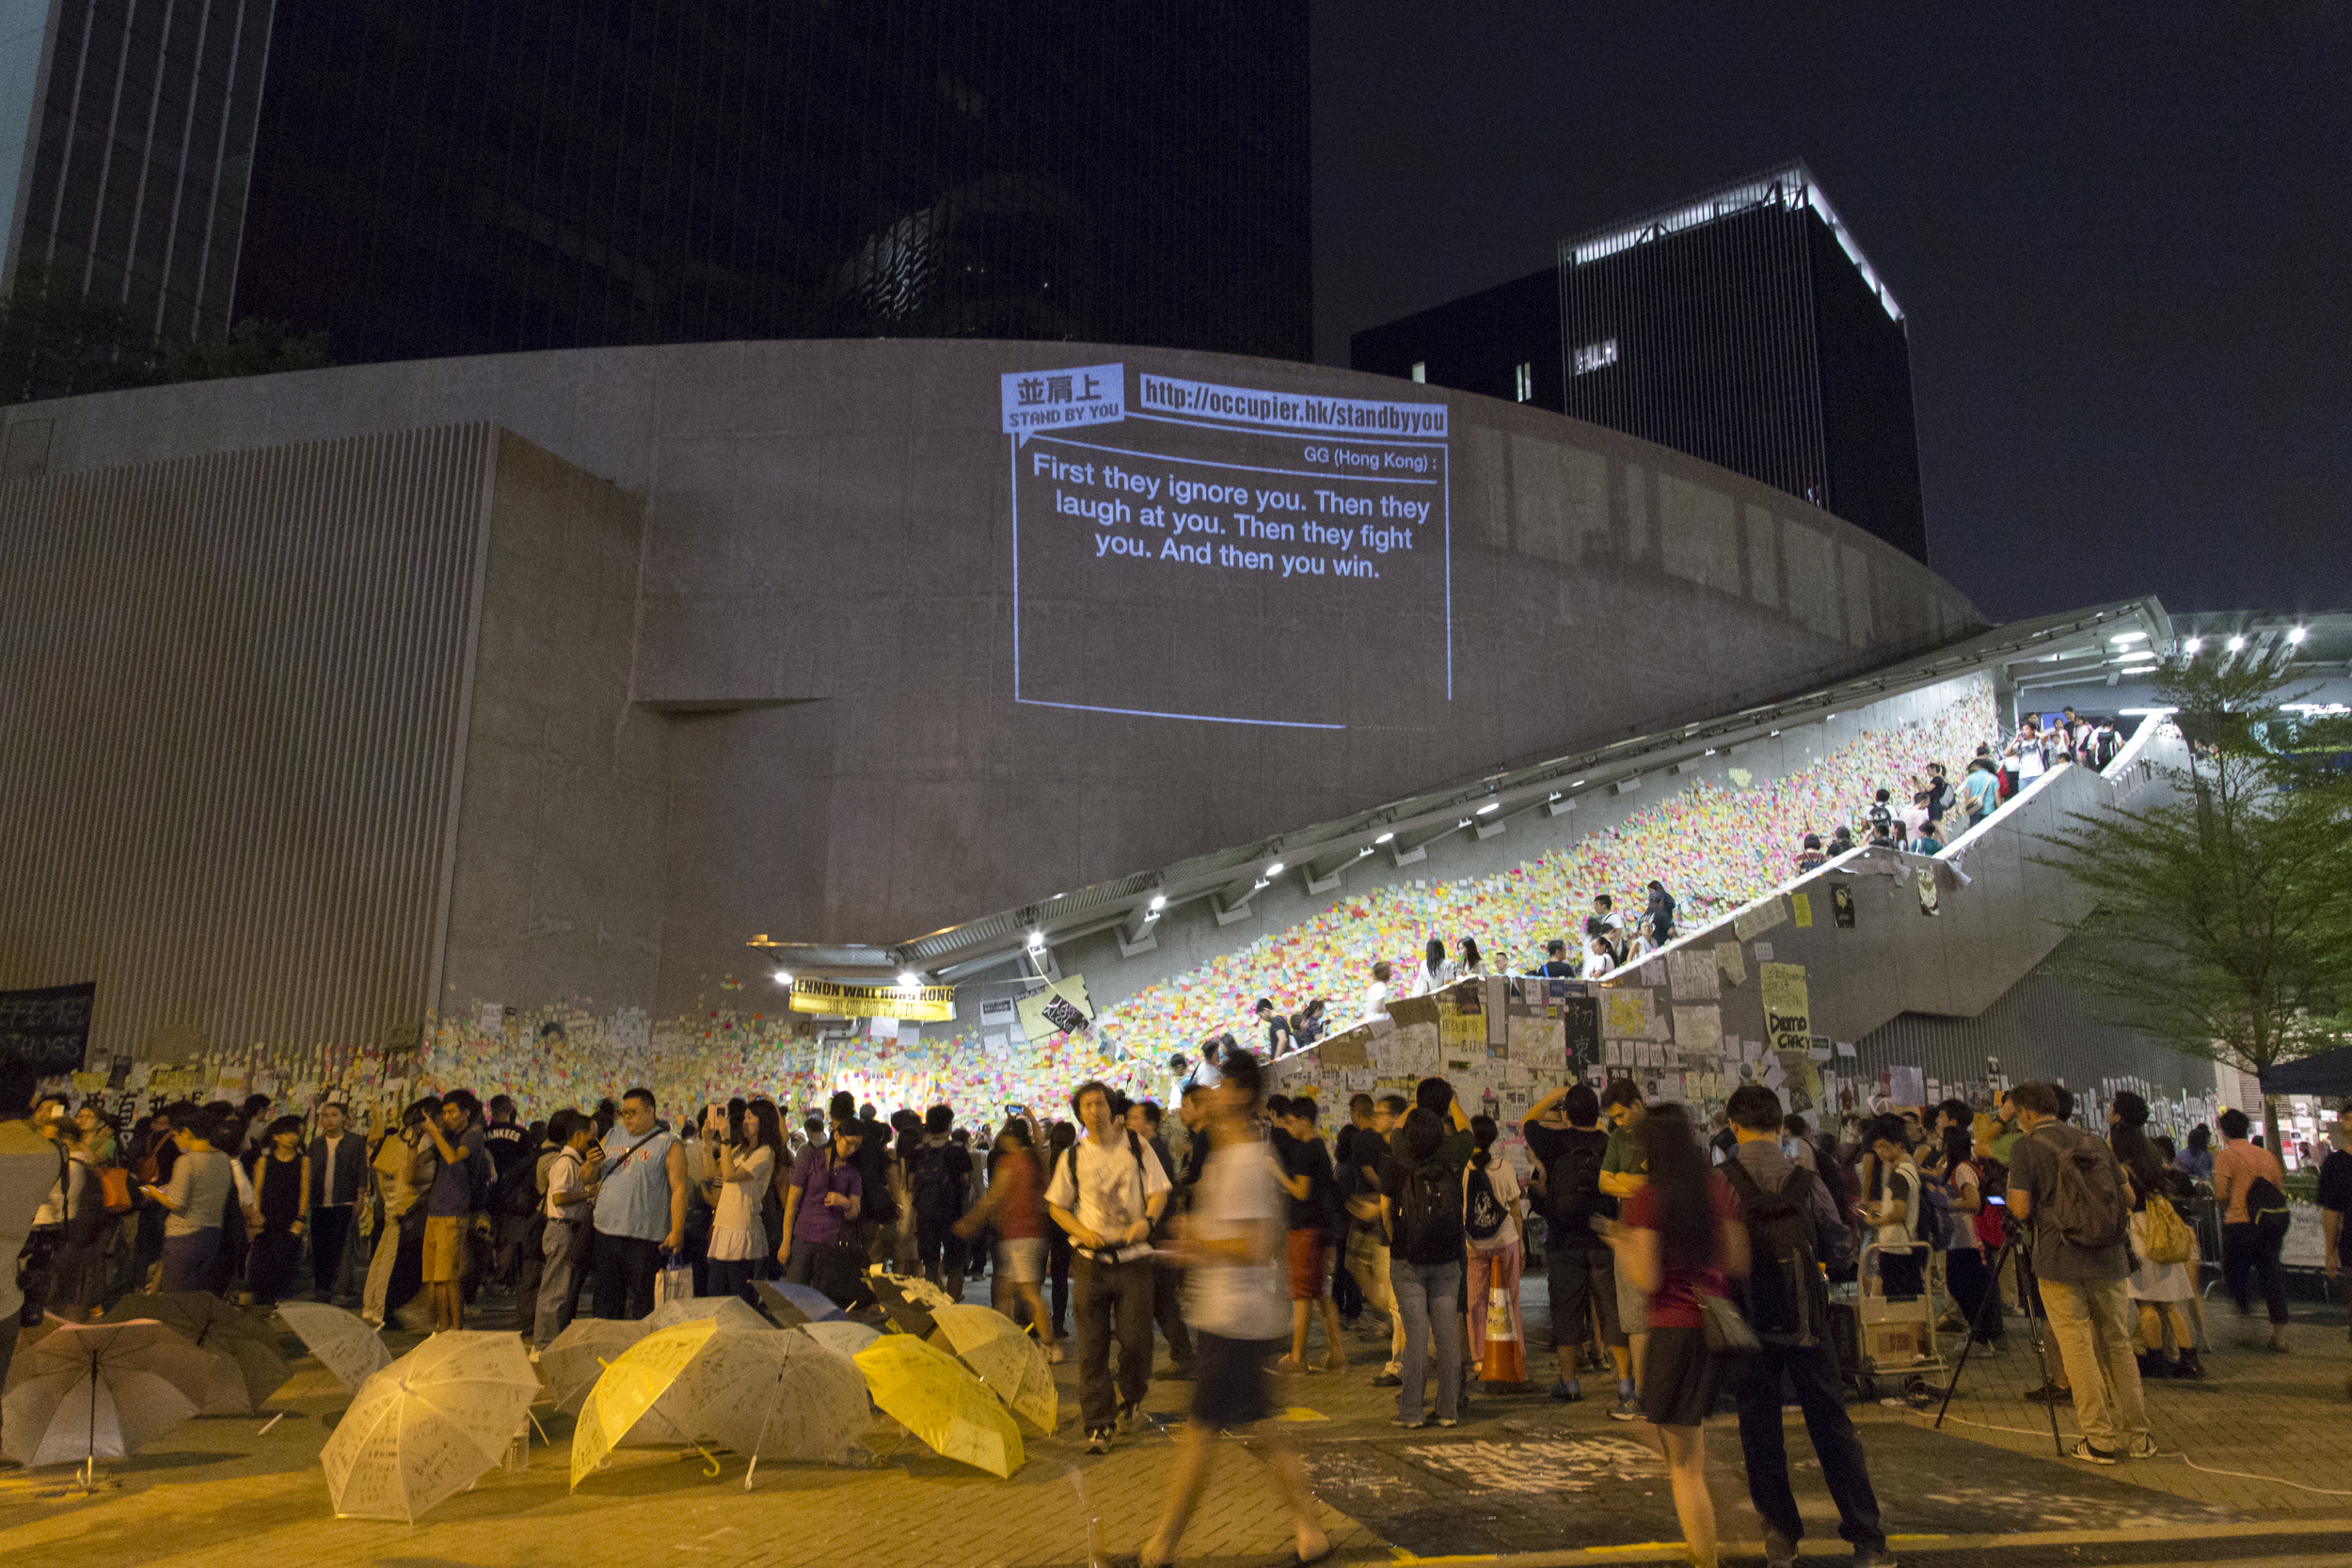 """Do you hear the people sing?    Singing the song of angry men?""   It was stated in July 1997, when the United Kingdom handed Hong Kong back to China, the government would act as 'one country, two systems.' But for the 2016 Legislative Election the Chinese government will choose the representatives for the Hong Kong citizens to vote from. In September 2014, Hong Kong citizens gathered in protest for their right to fairly vote. From this issue the Umbrella Movement was born."